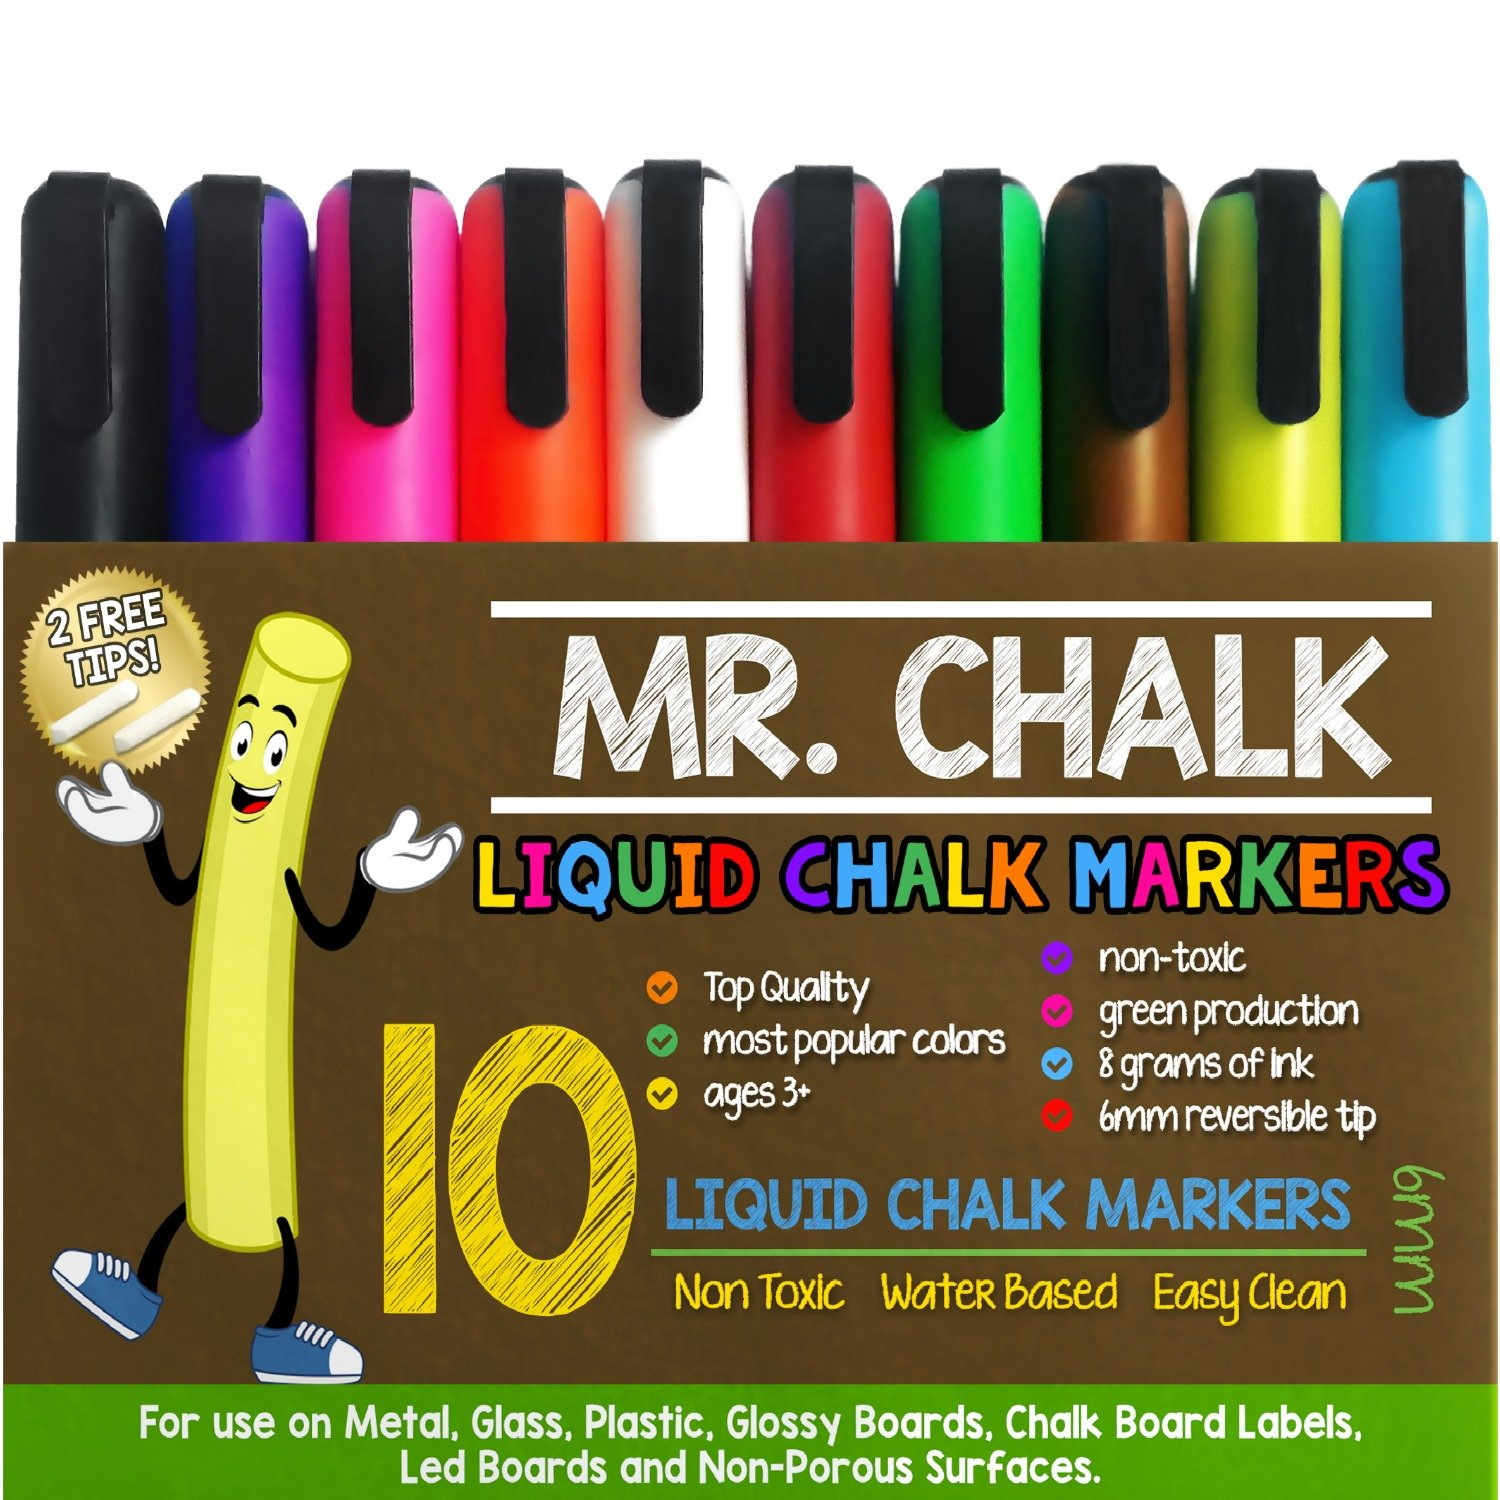 Mr. Chalk 10 Pack of 6MM Liquid Dustless Erasable Chalk Markers by School Smarts. Best Used for Menu Chalkboards, Bistro Signs, Glass, Metal, Chalkboard Contact Paper, Decorations and Holiday Crafts. Large 10 Pack with Reversible Tips. Great for Home,Offic